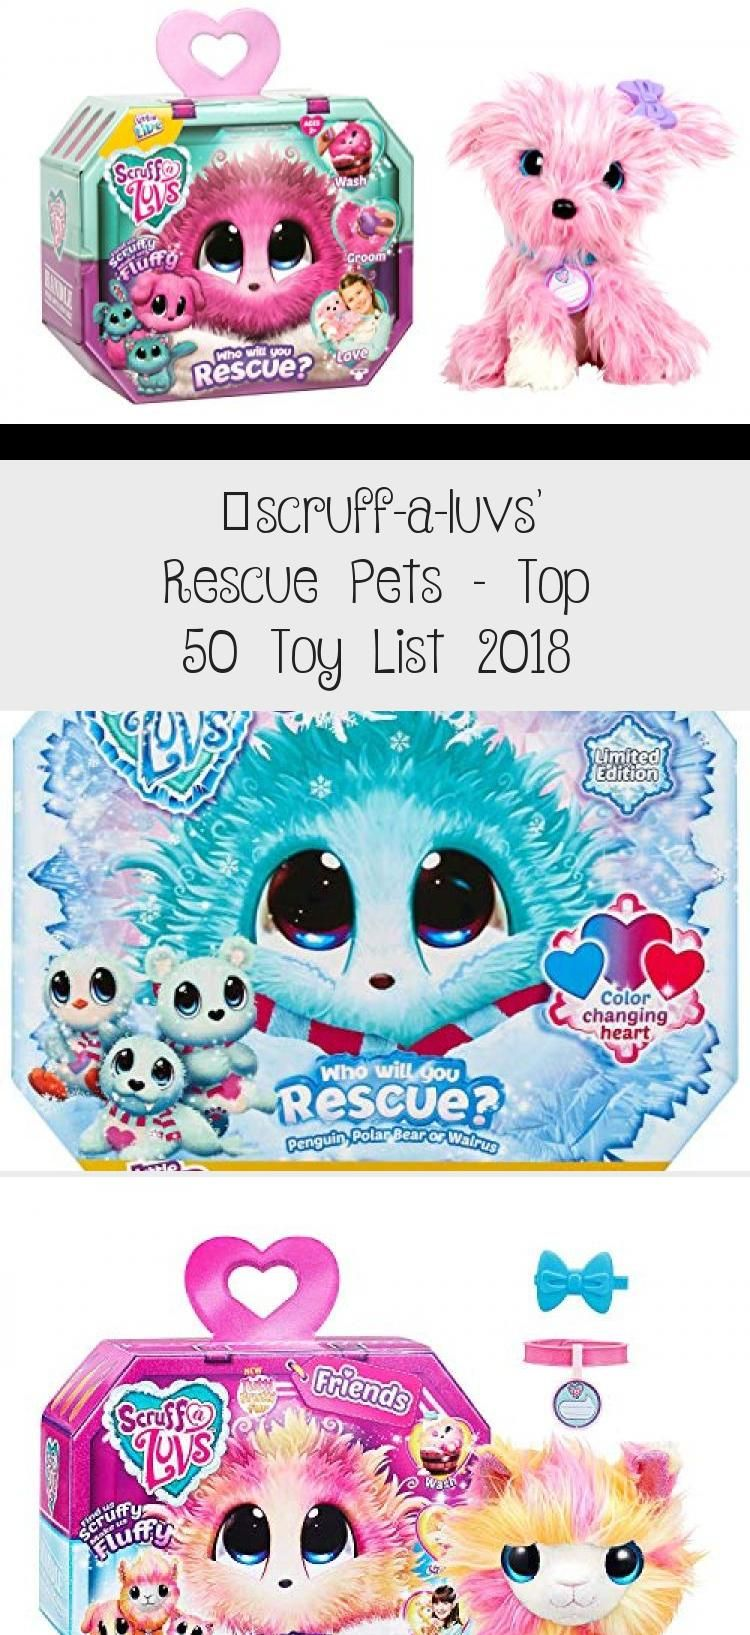 Scruff A Luvs Rescue Pets Top 50 Toy List 2018 Yeswecoupon Com 90stoys Outdoortoys Crochettoys Toysjuguetes Homemadetoys In 2020 Animal Rescue Toys Luvs